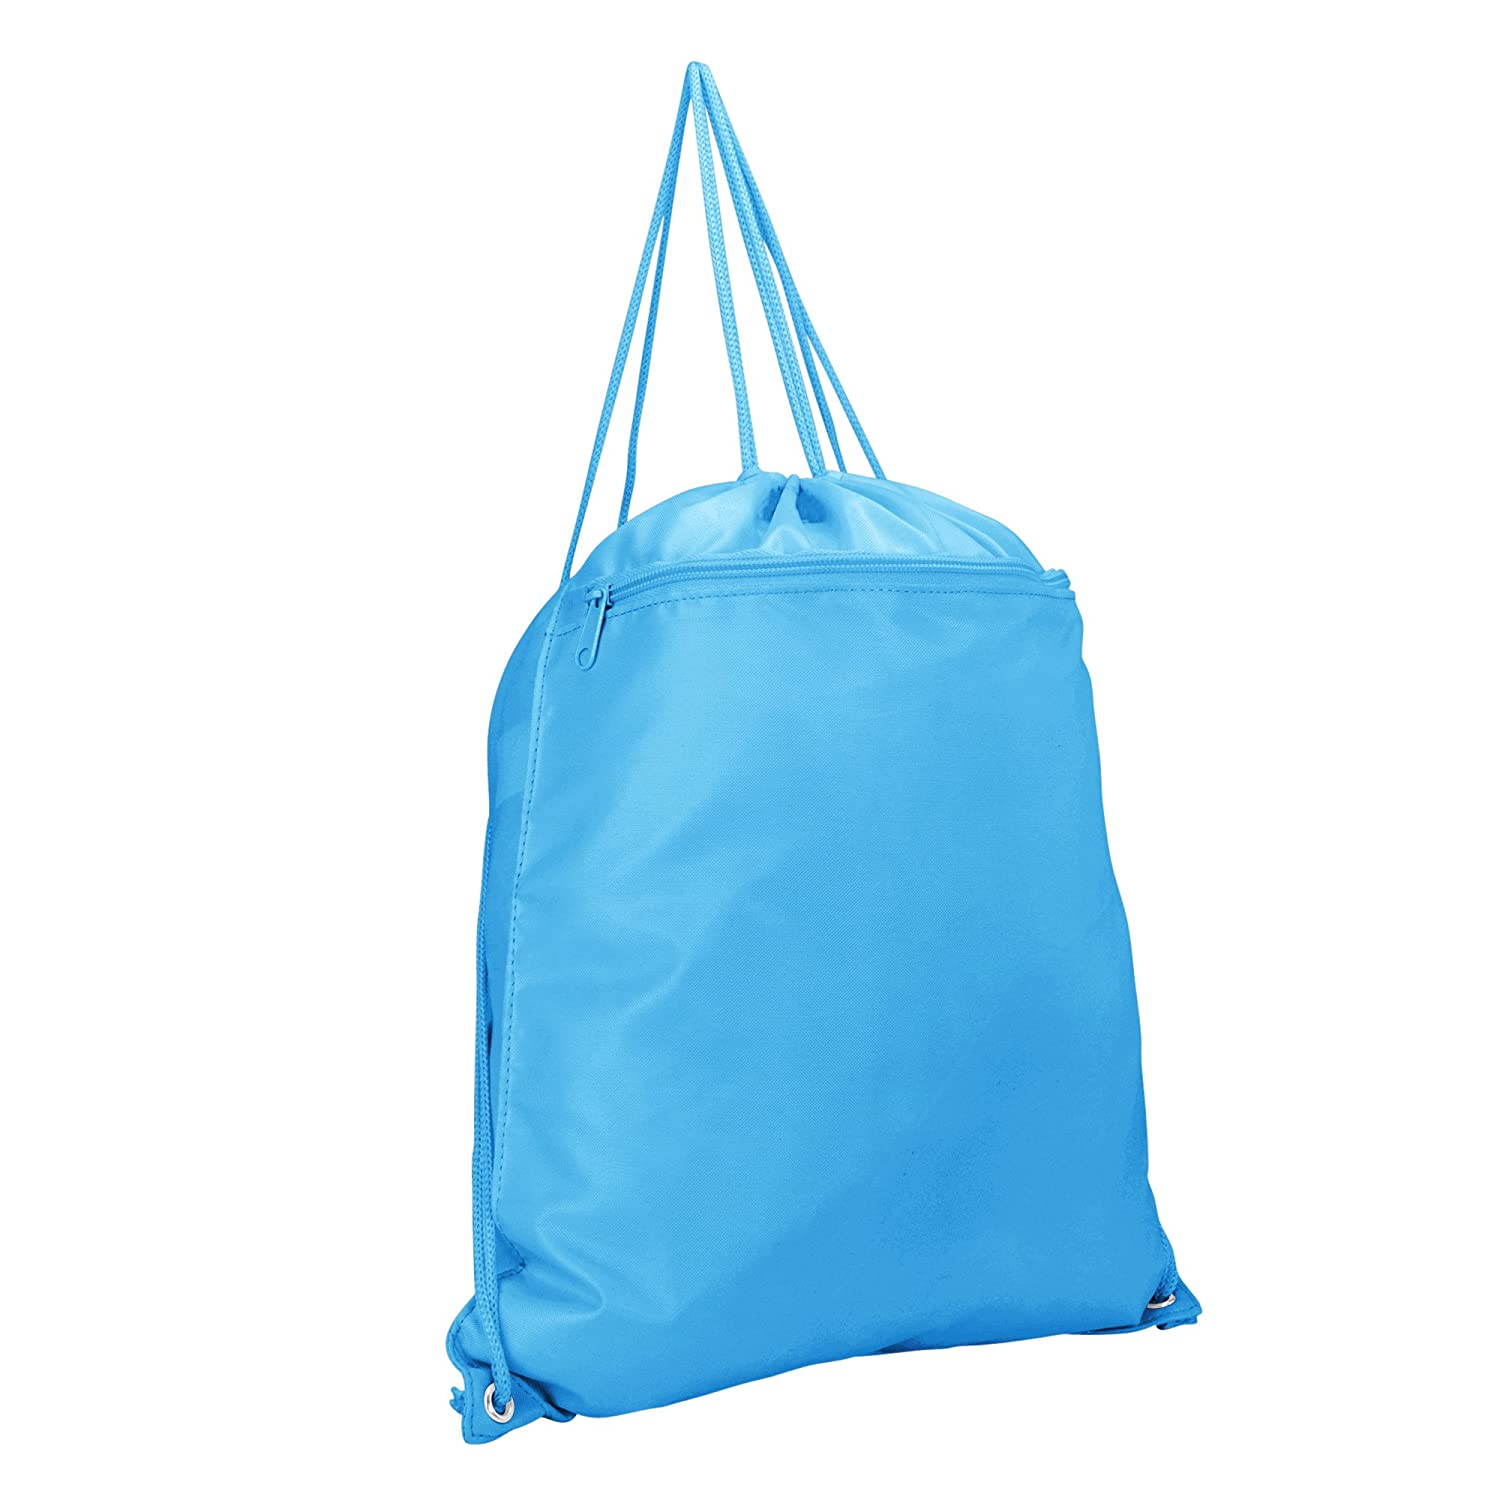 Amazon Best Sellers: Best Gym Drawstring Bags